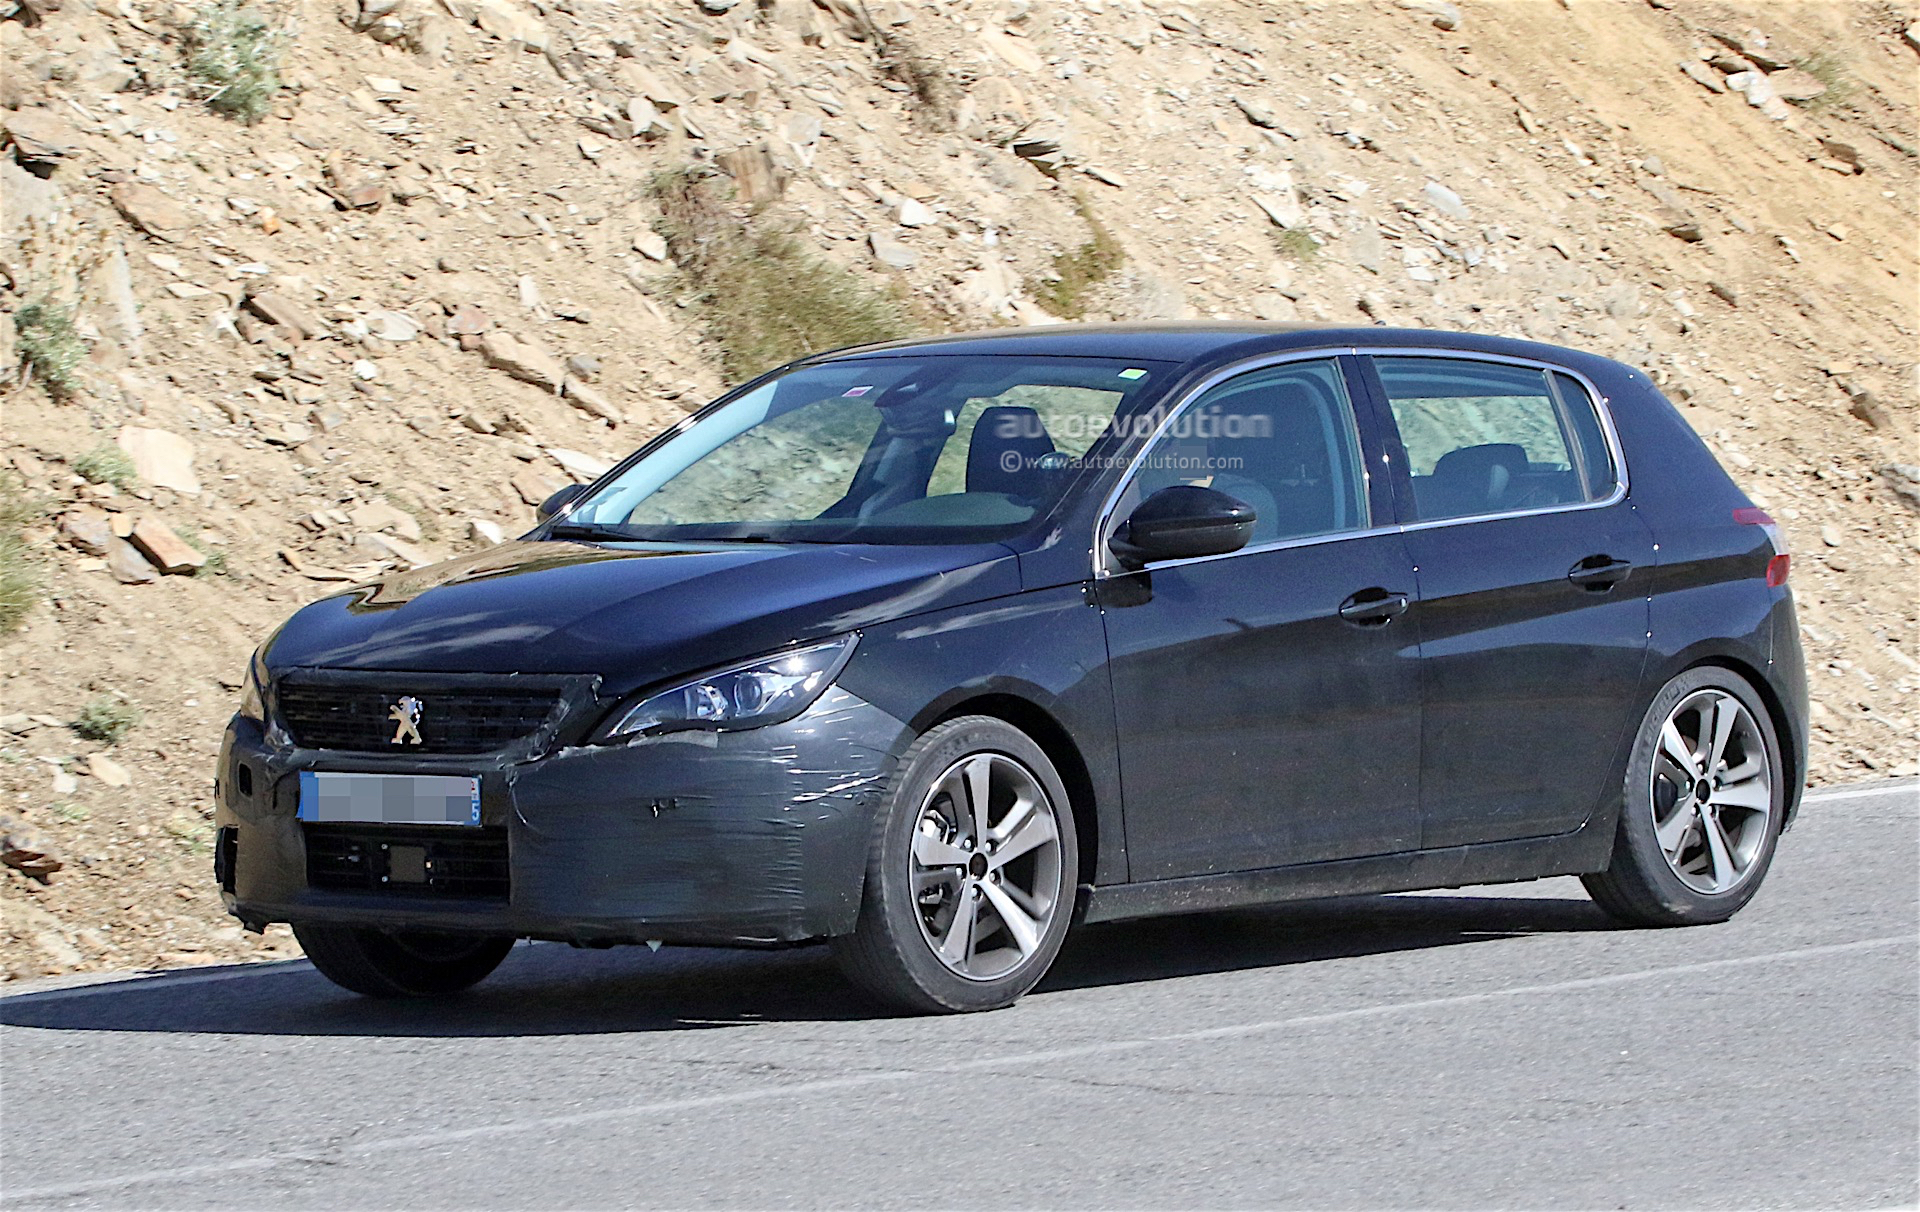 Peugeot 308 Facelift Spied With Little Camouflage, Expect